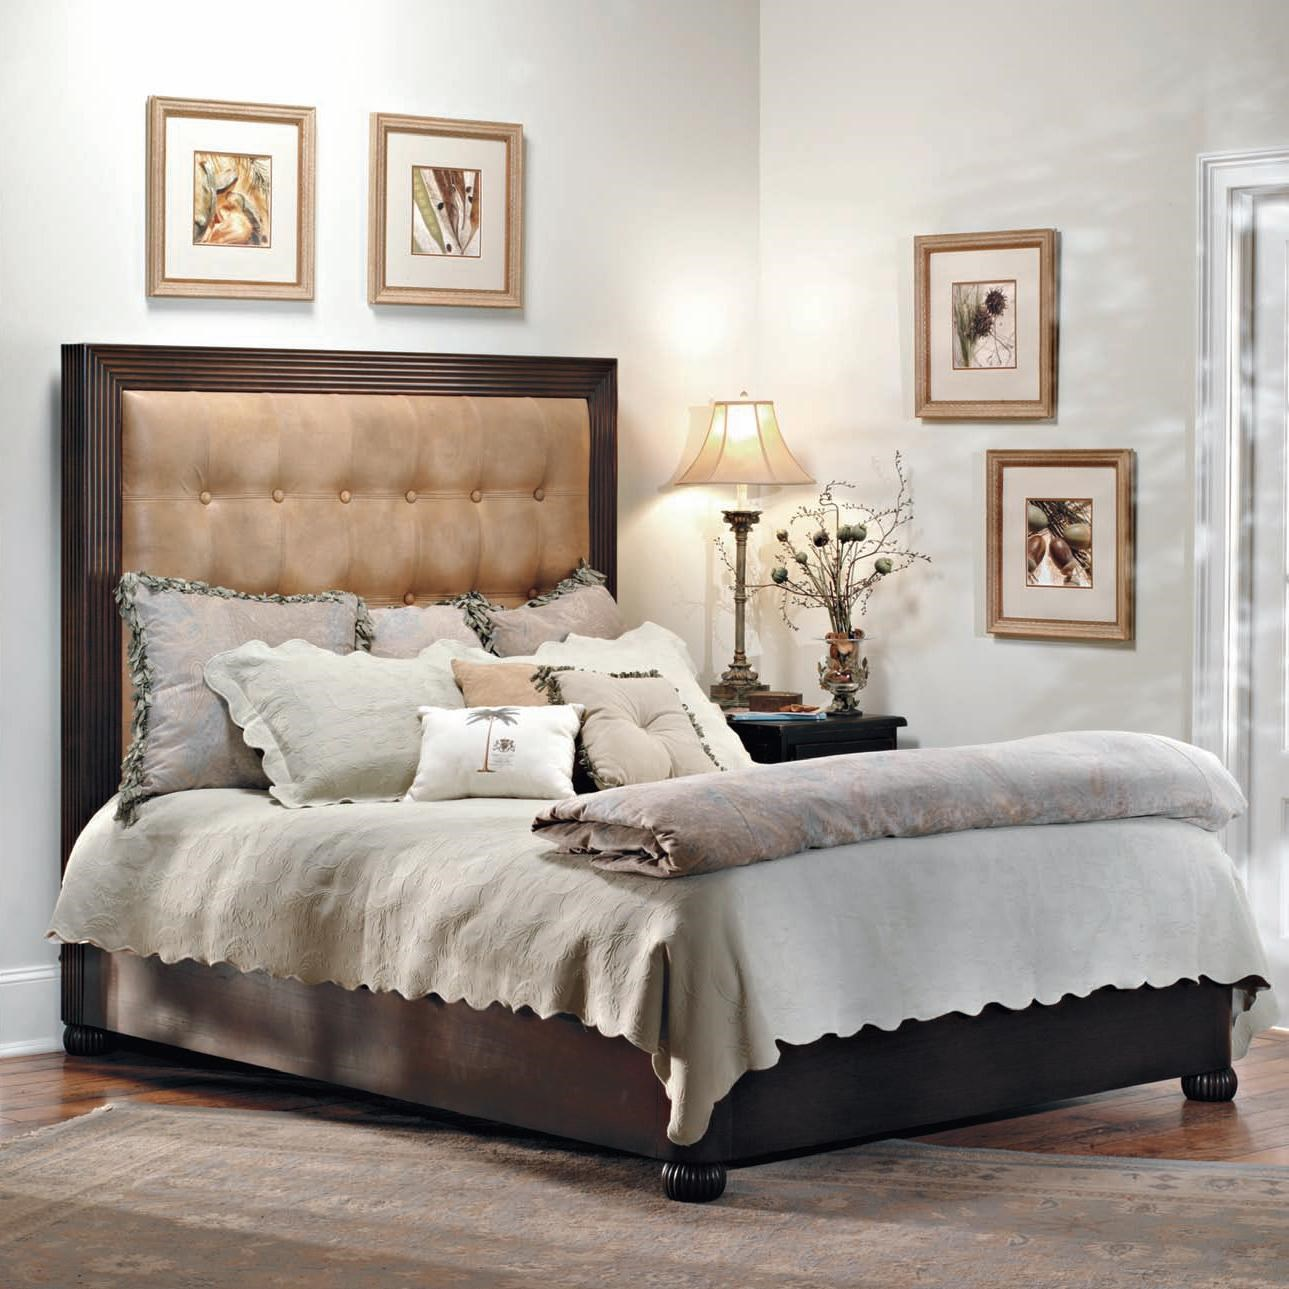 old biscayne designs custom design solid wood beds dylan wood platform bed with upholstered headboard - Solid Wood Platform Bed